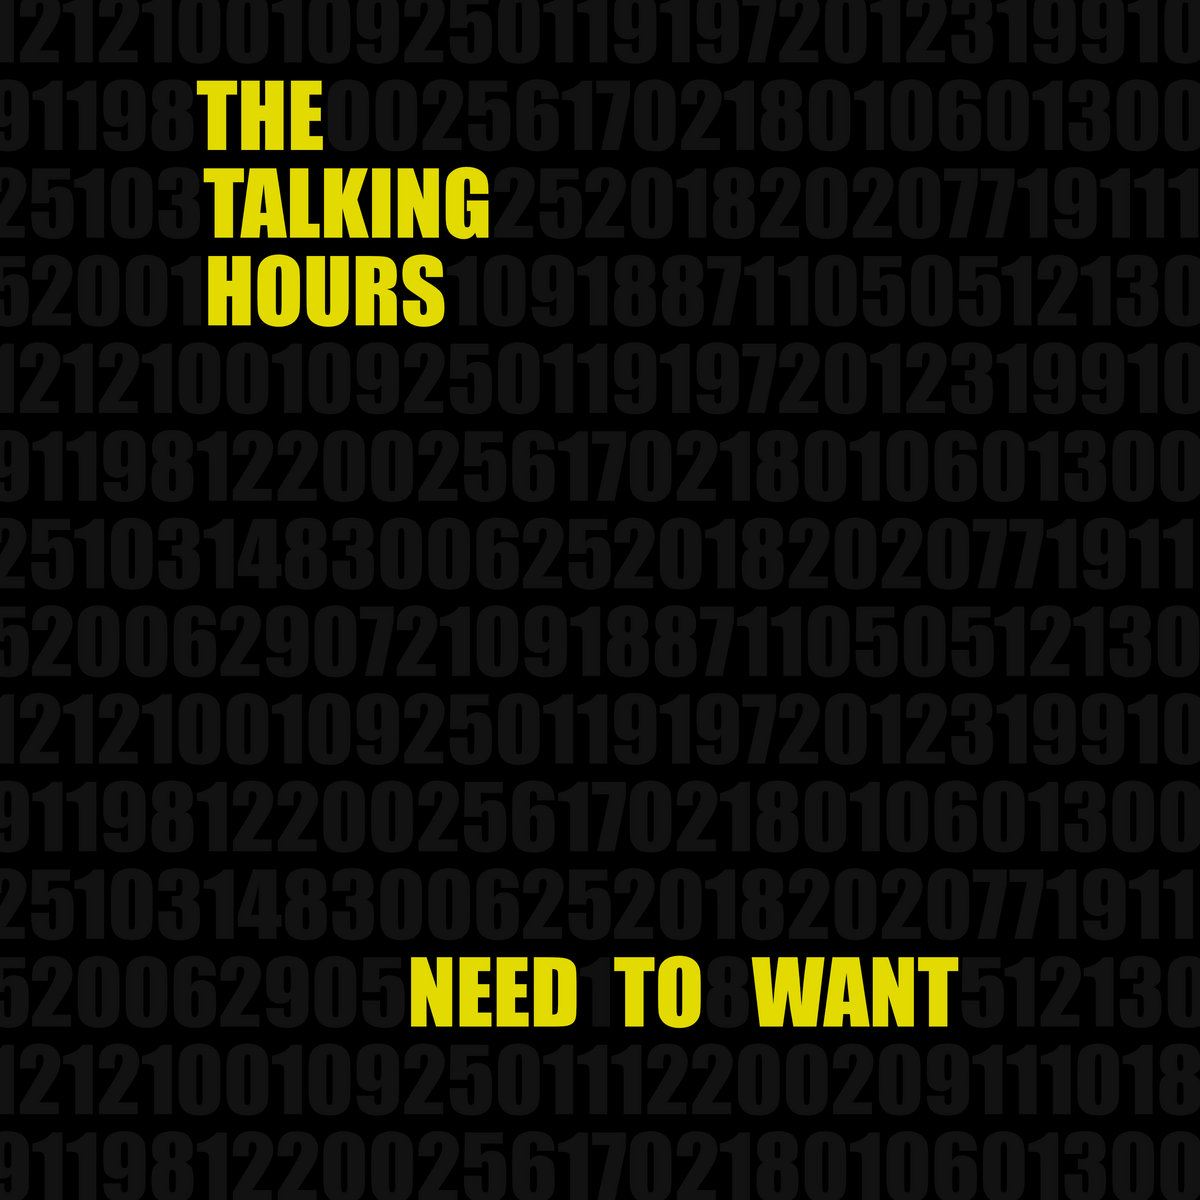 Need To Want by The Talking Hours